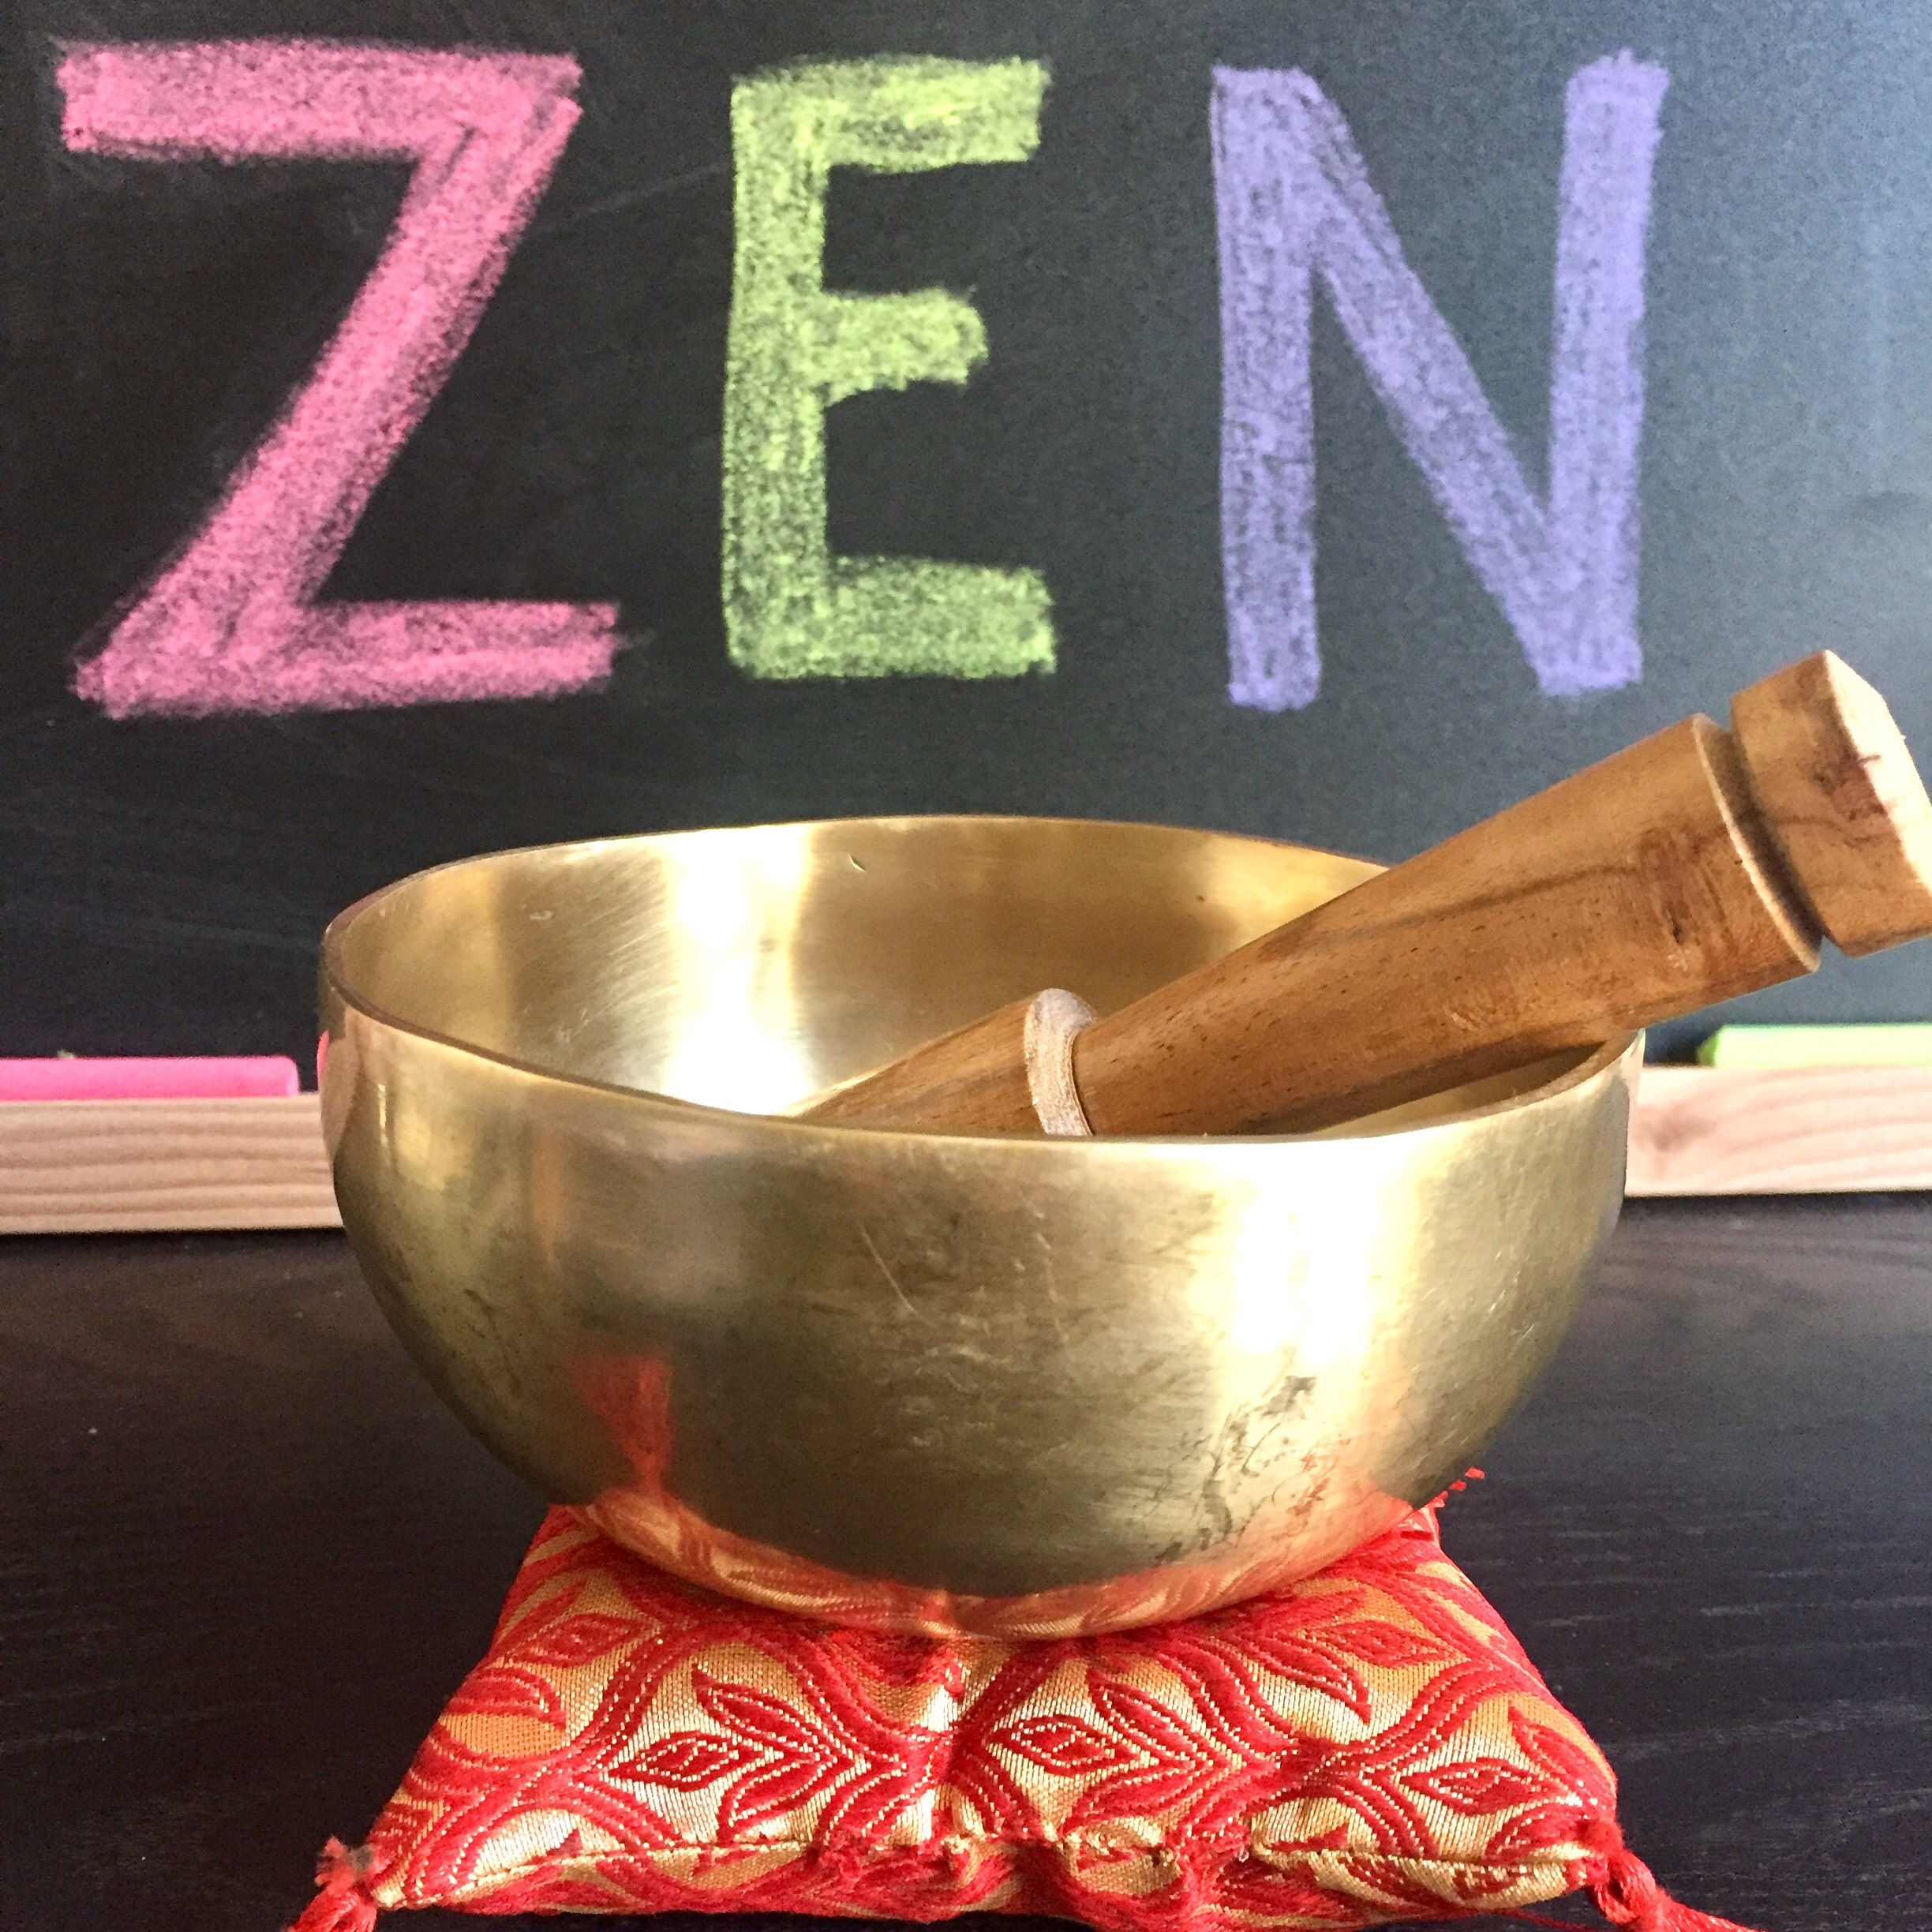 the Singing bowl - is an ambassador of peace in the classroom